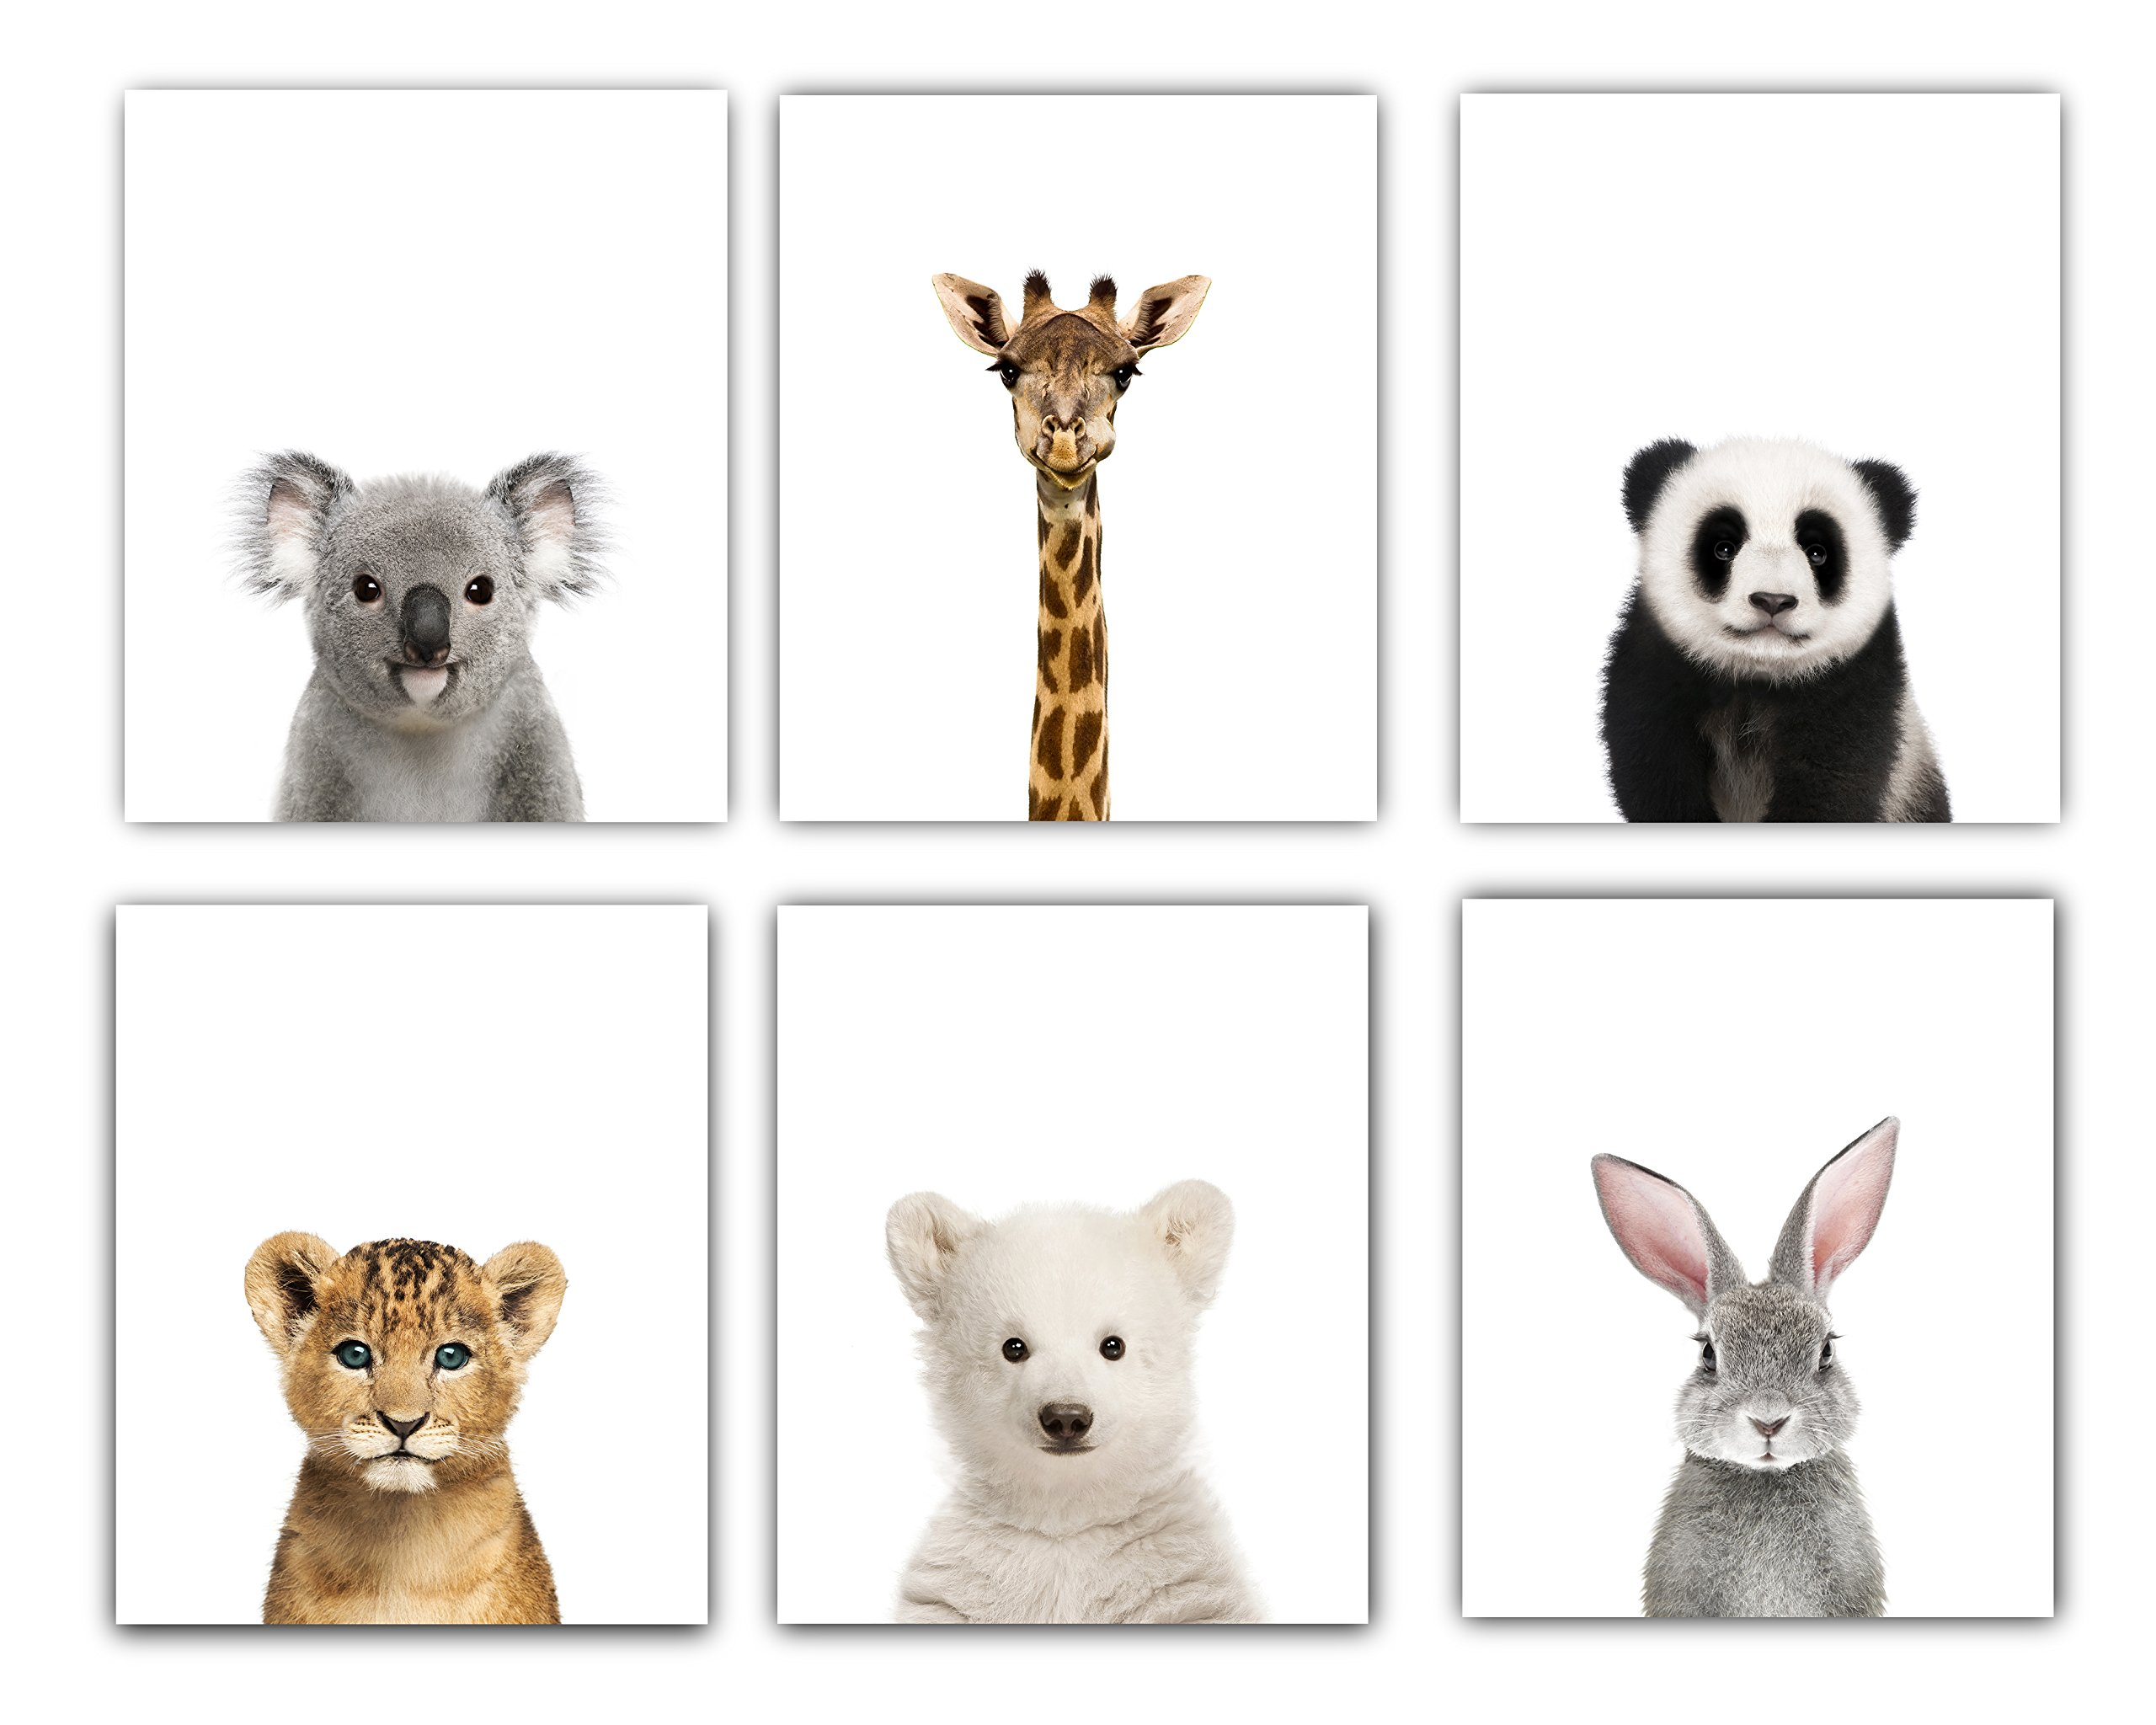 Baby Animals Nursery Wall Decor | Baby Room Decor Animal Nursery Pictures 8x10 | Baby Nursery Decor Cute Animal Photography Wall Prints| Set of 6 Unframed Prints for Baby Boys & Girls